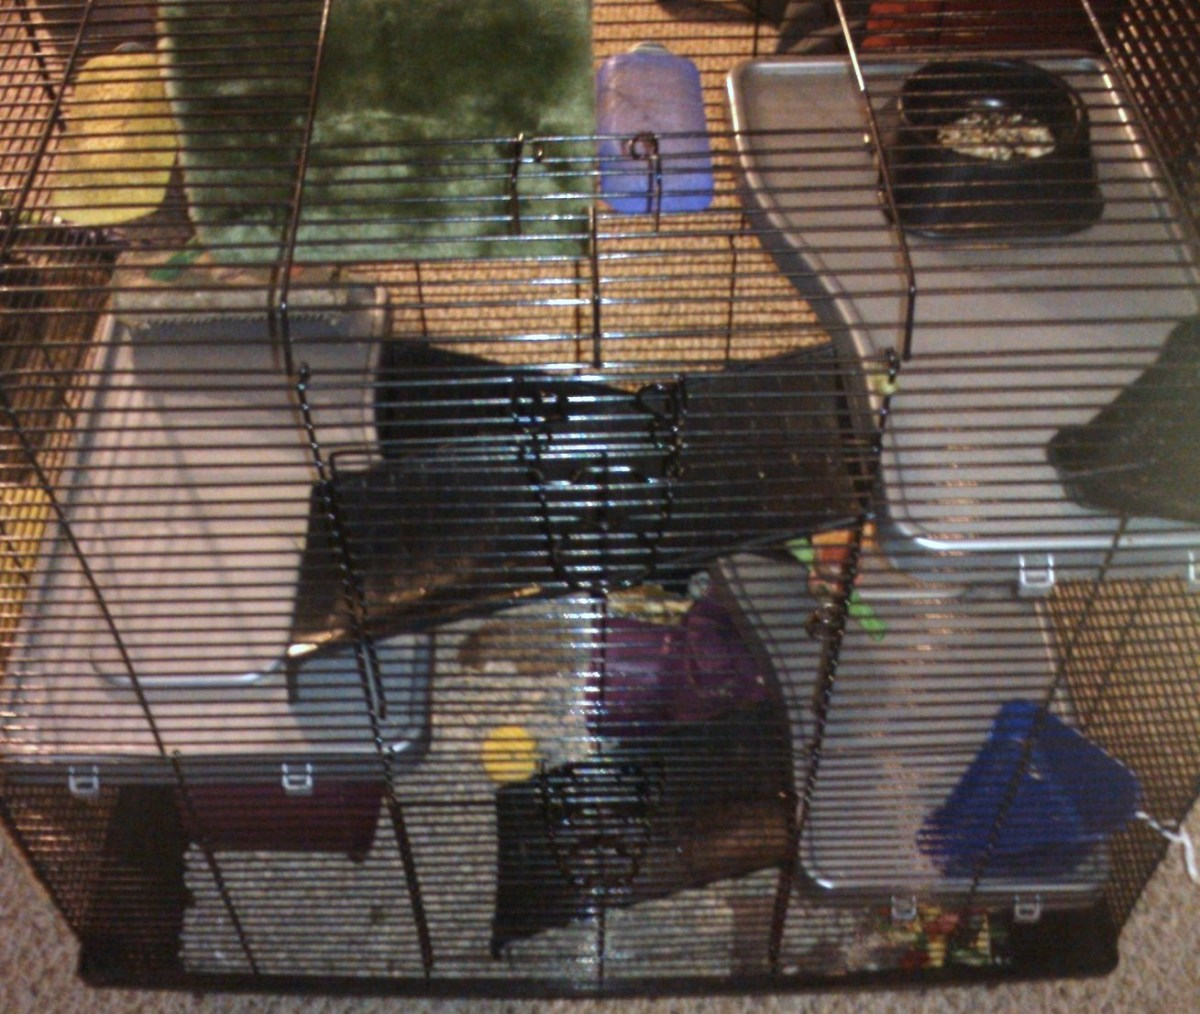 A multilevel cage requires more spot-cleaning on a daily basis.